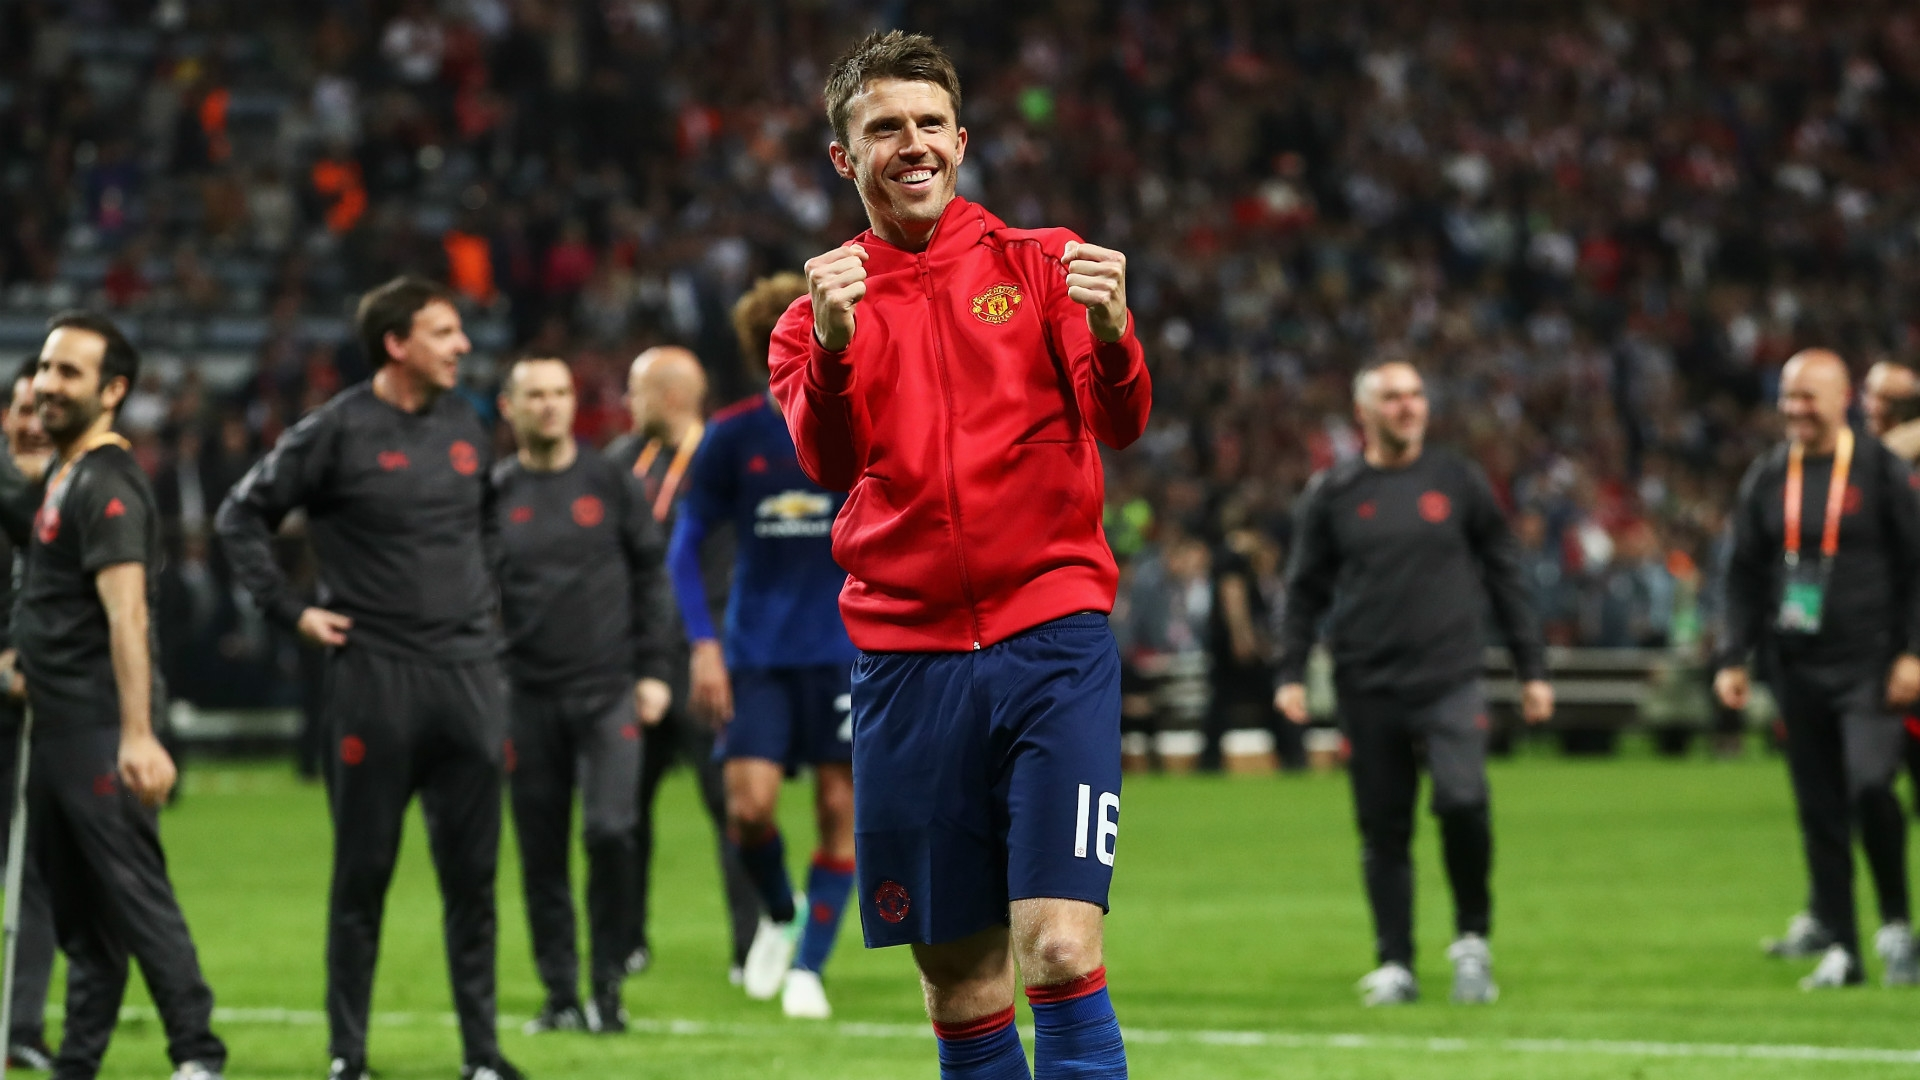 Michael Carrick is to be given a game testimonial by Manchester United